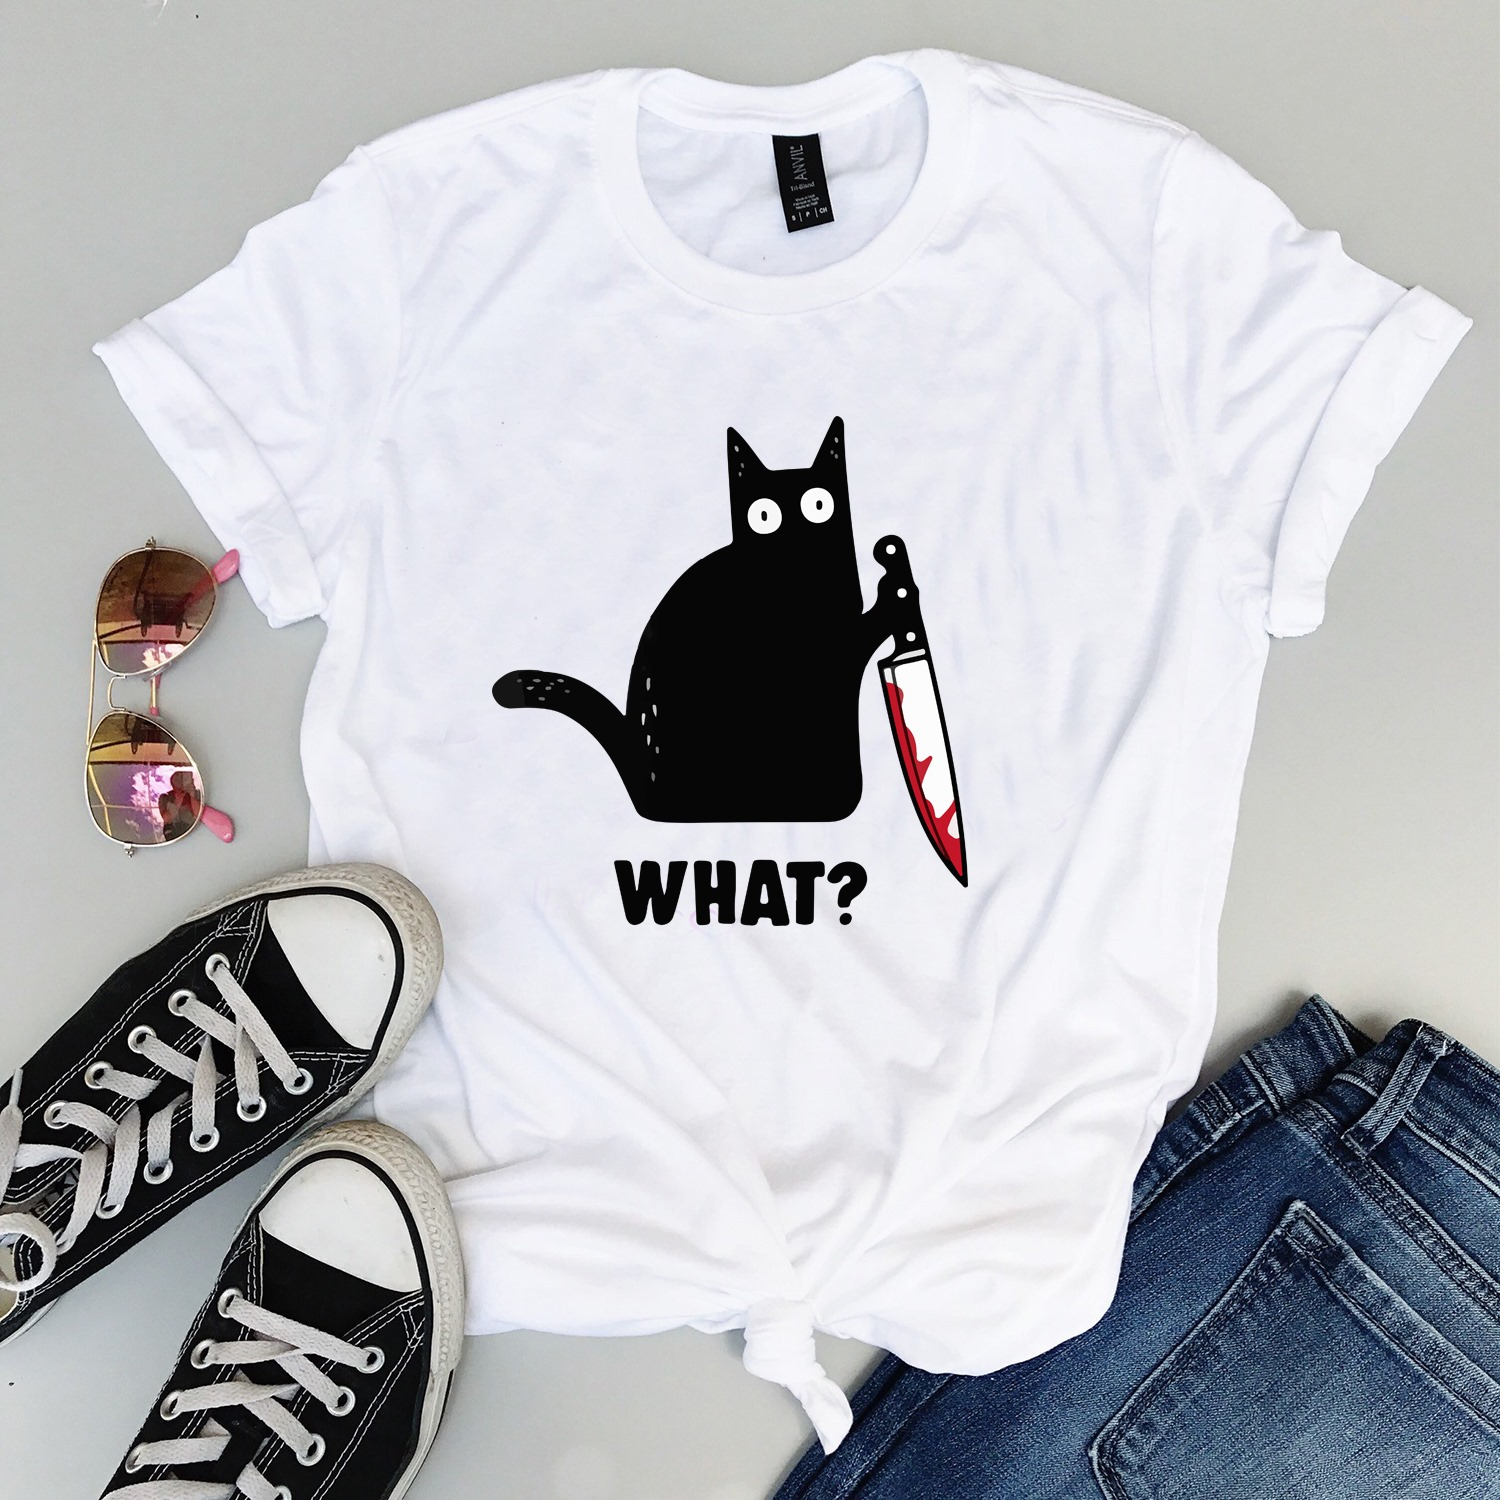 Bad cat with knife Women Jersey Tank Top